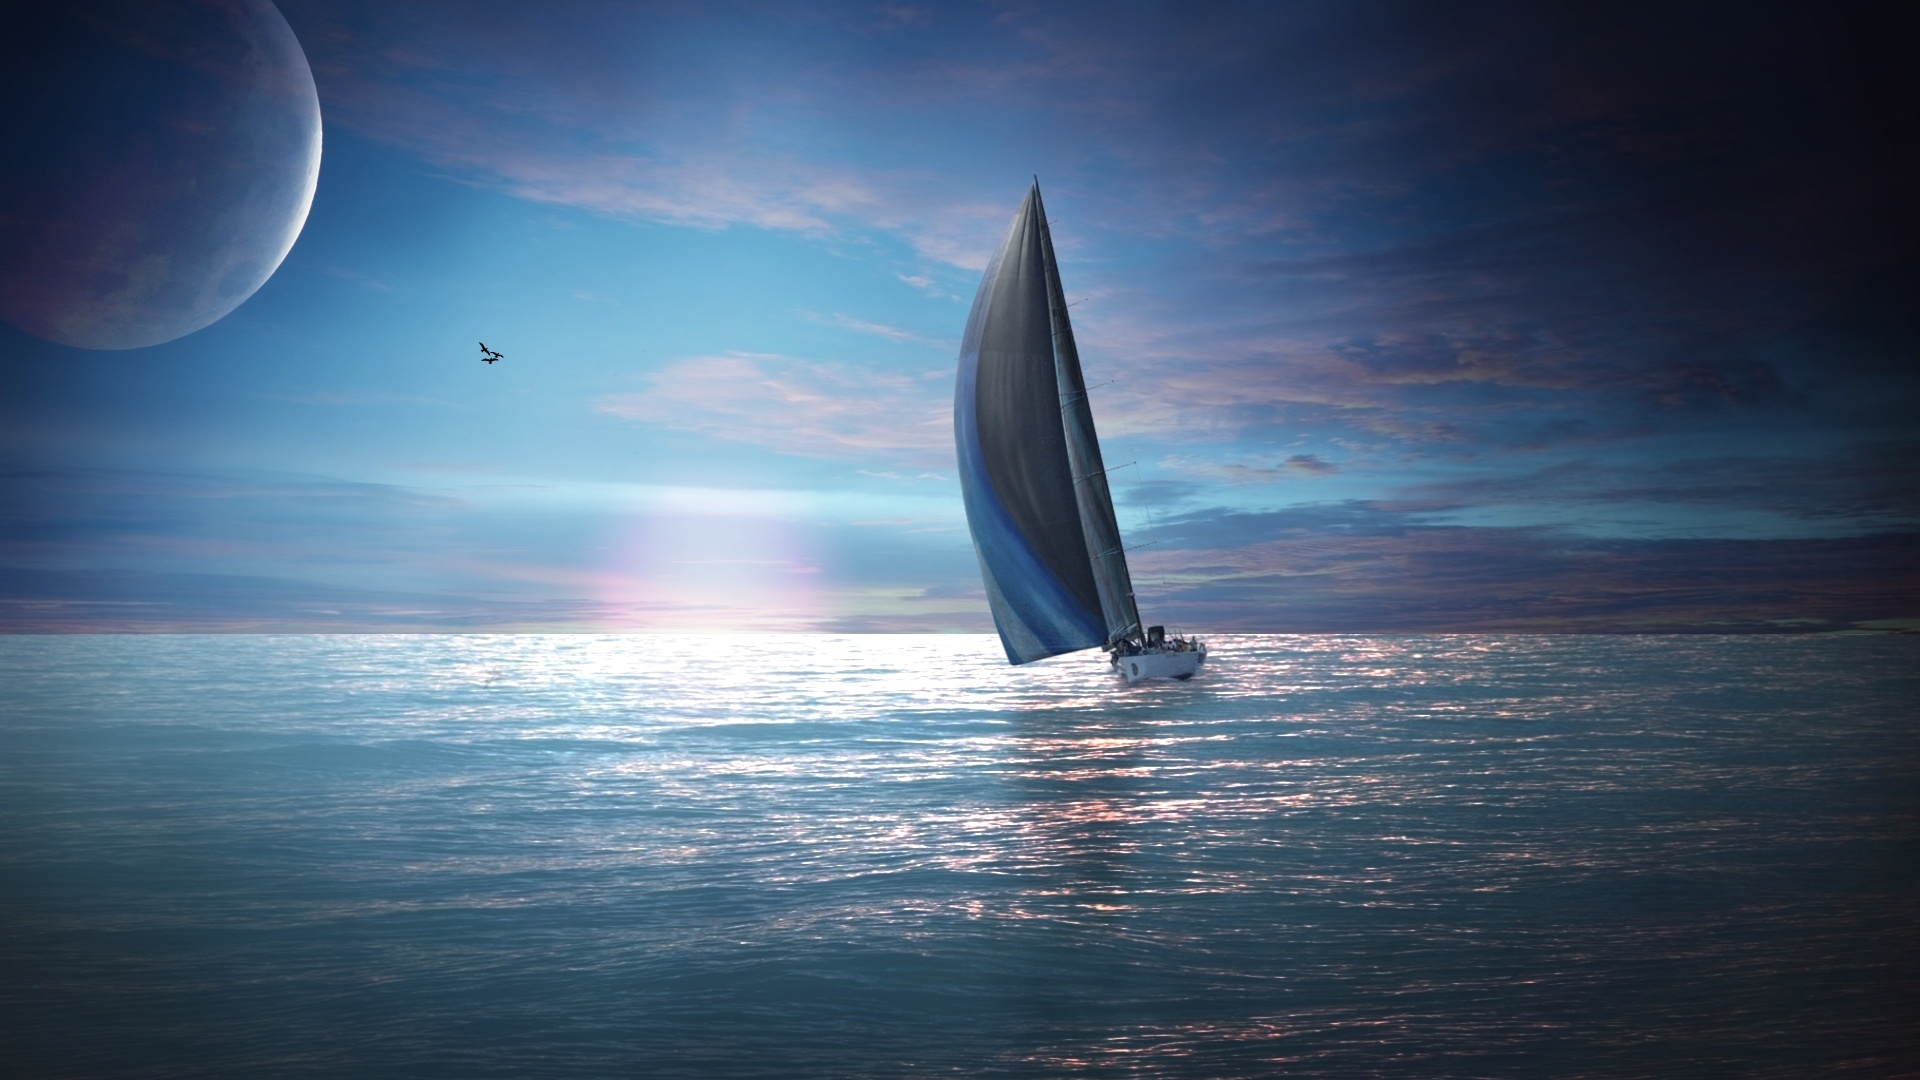 Free Download Sailing Boat Wallpapers Hd Wallpapers